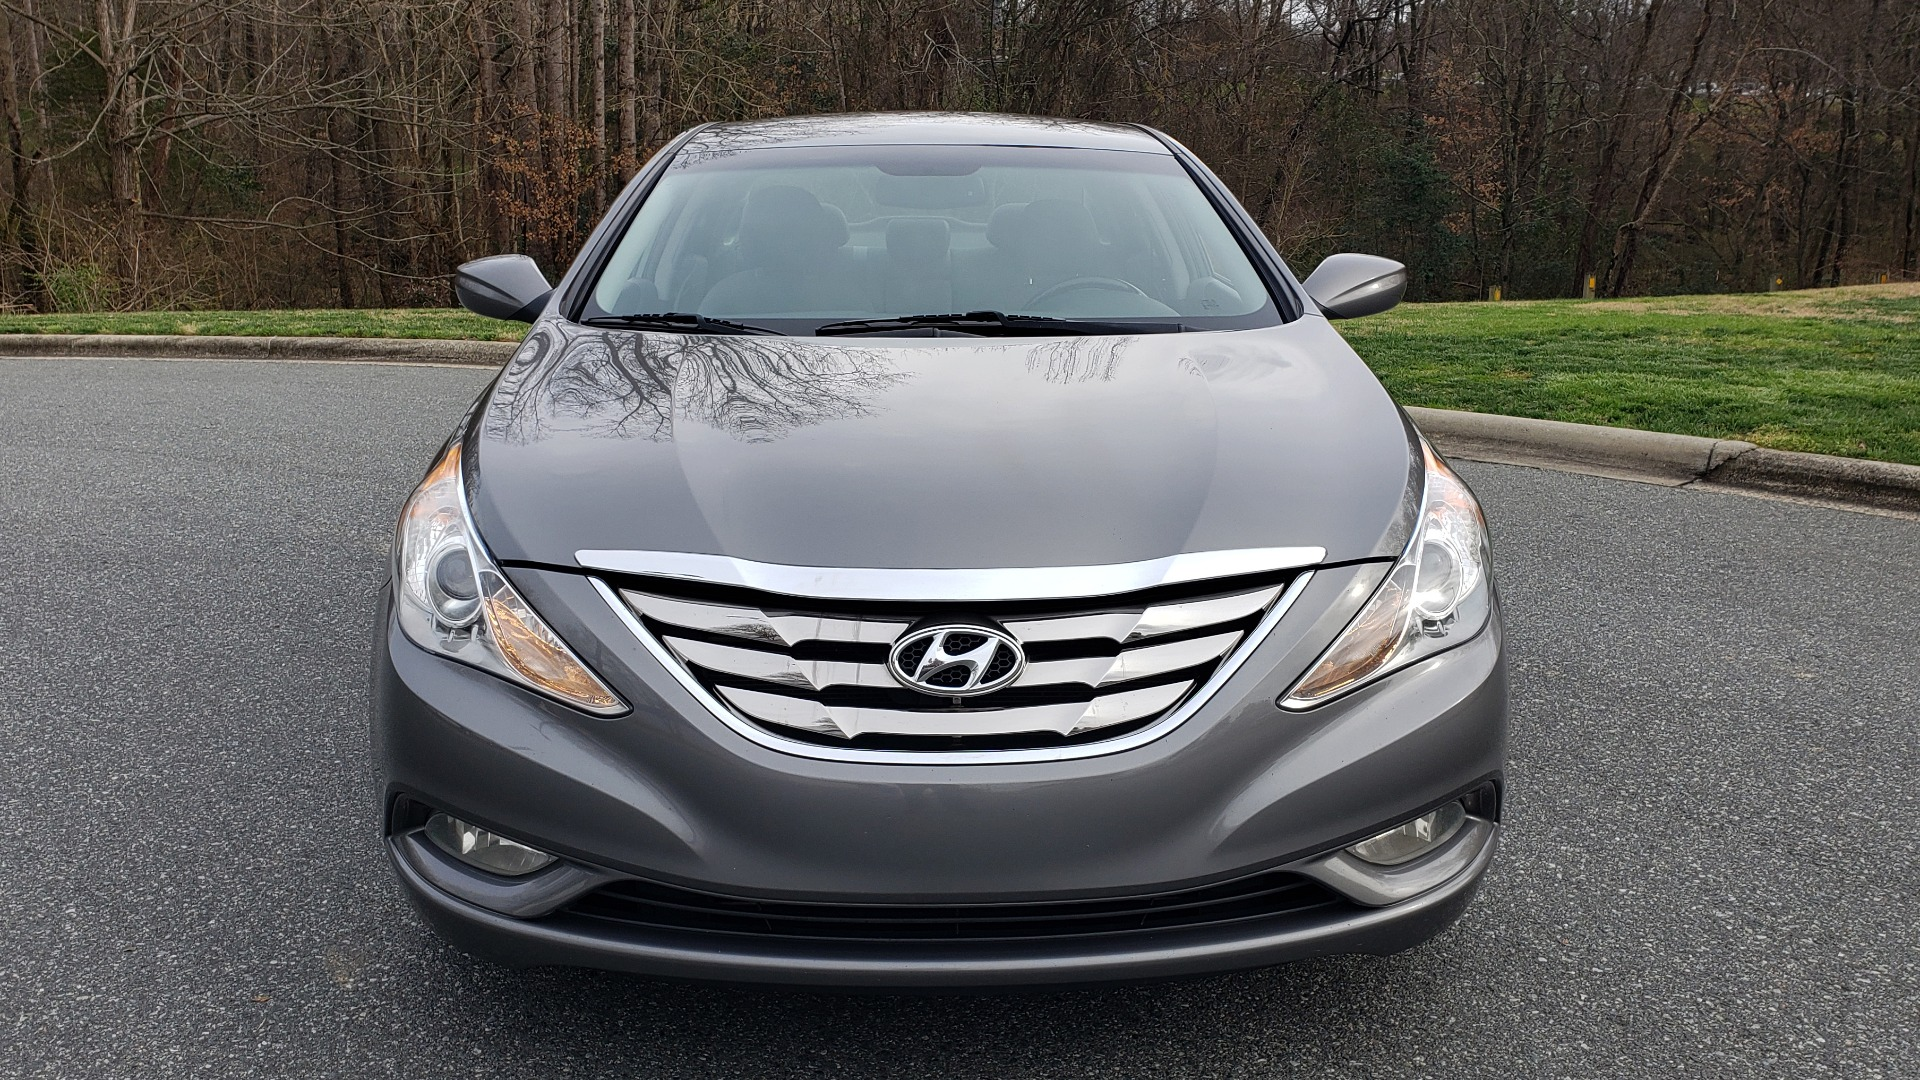 Used 2013 Hyundai SONATA SE AUTO / 2.4L 4-CYL / 6-SPD AUTO / VERY CLEAN for sale Sold at Formula Imports in Charlotte NC 28227 23